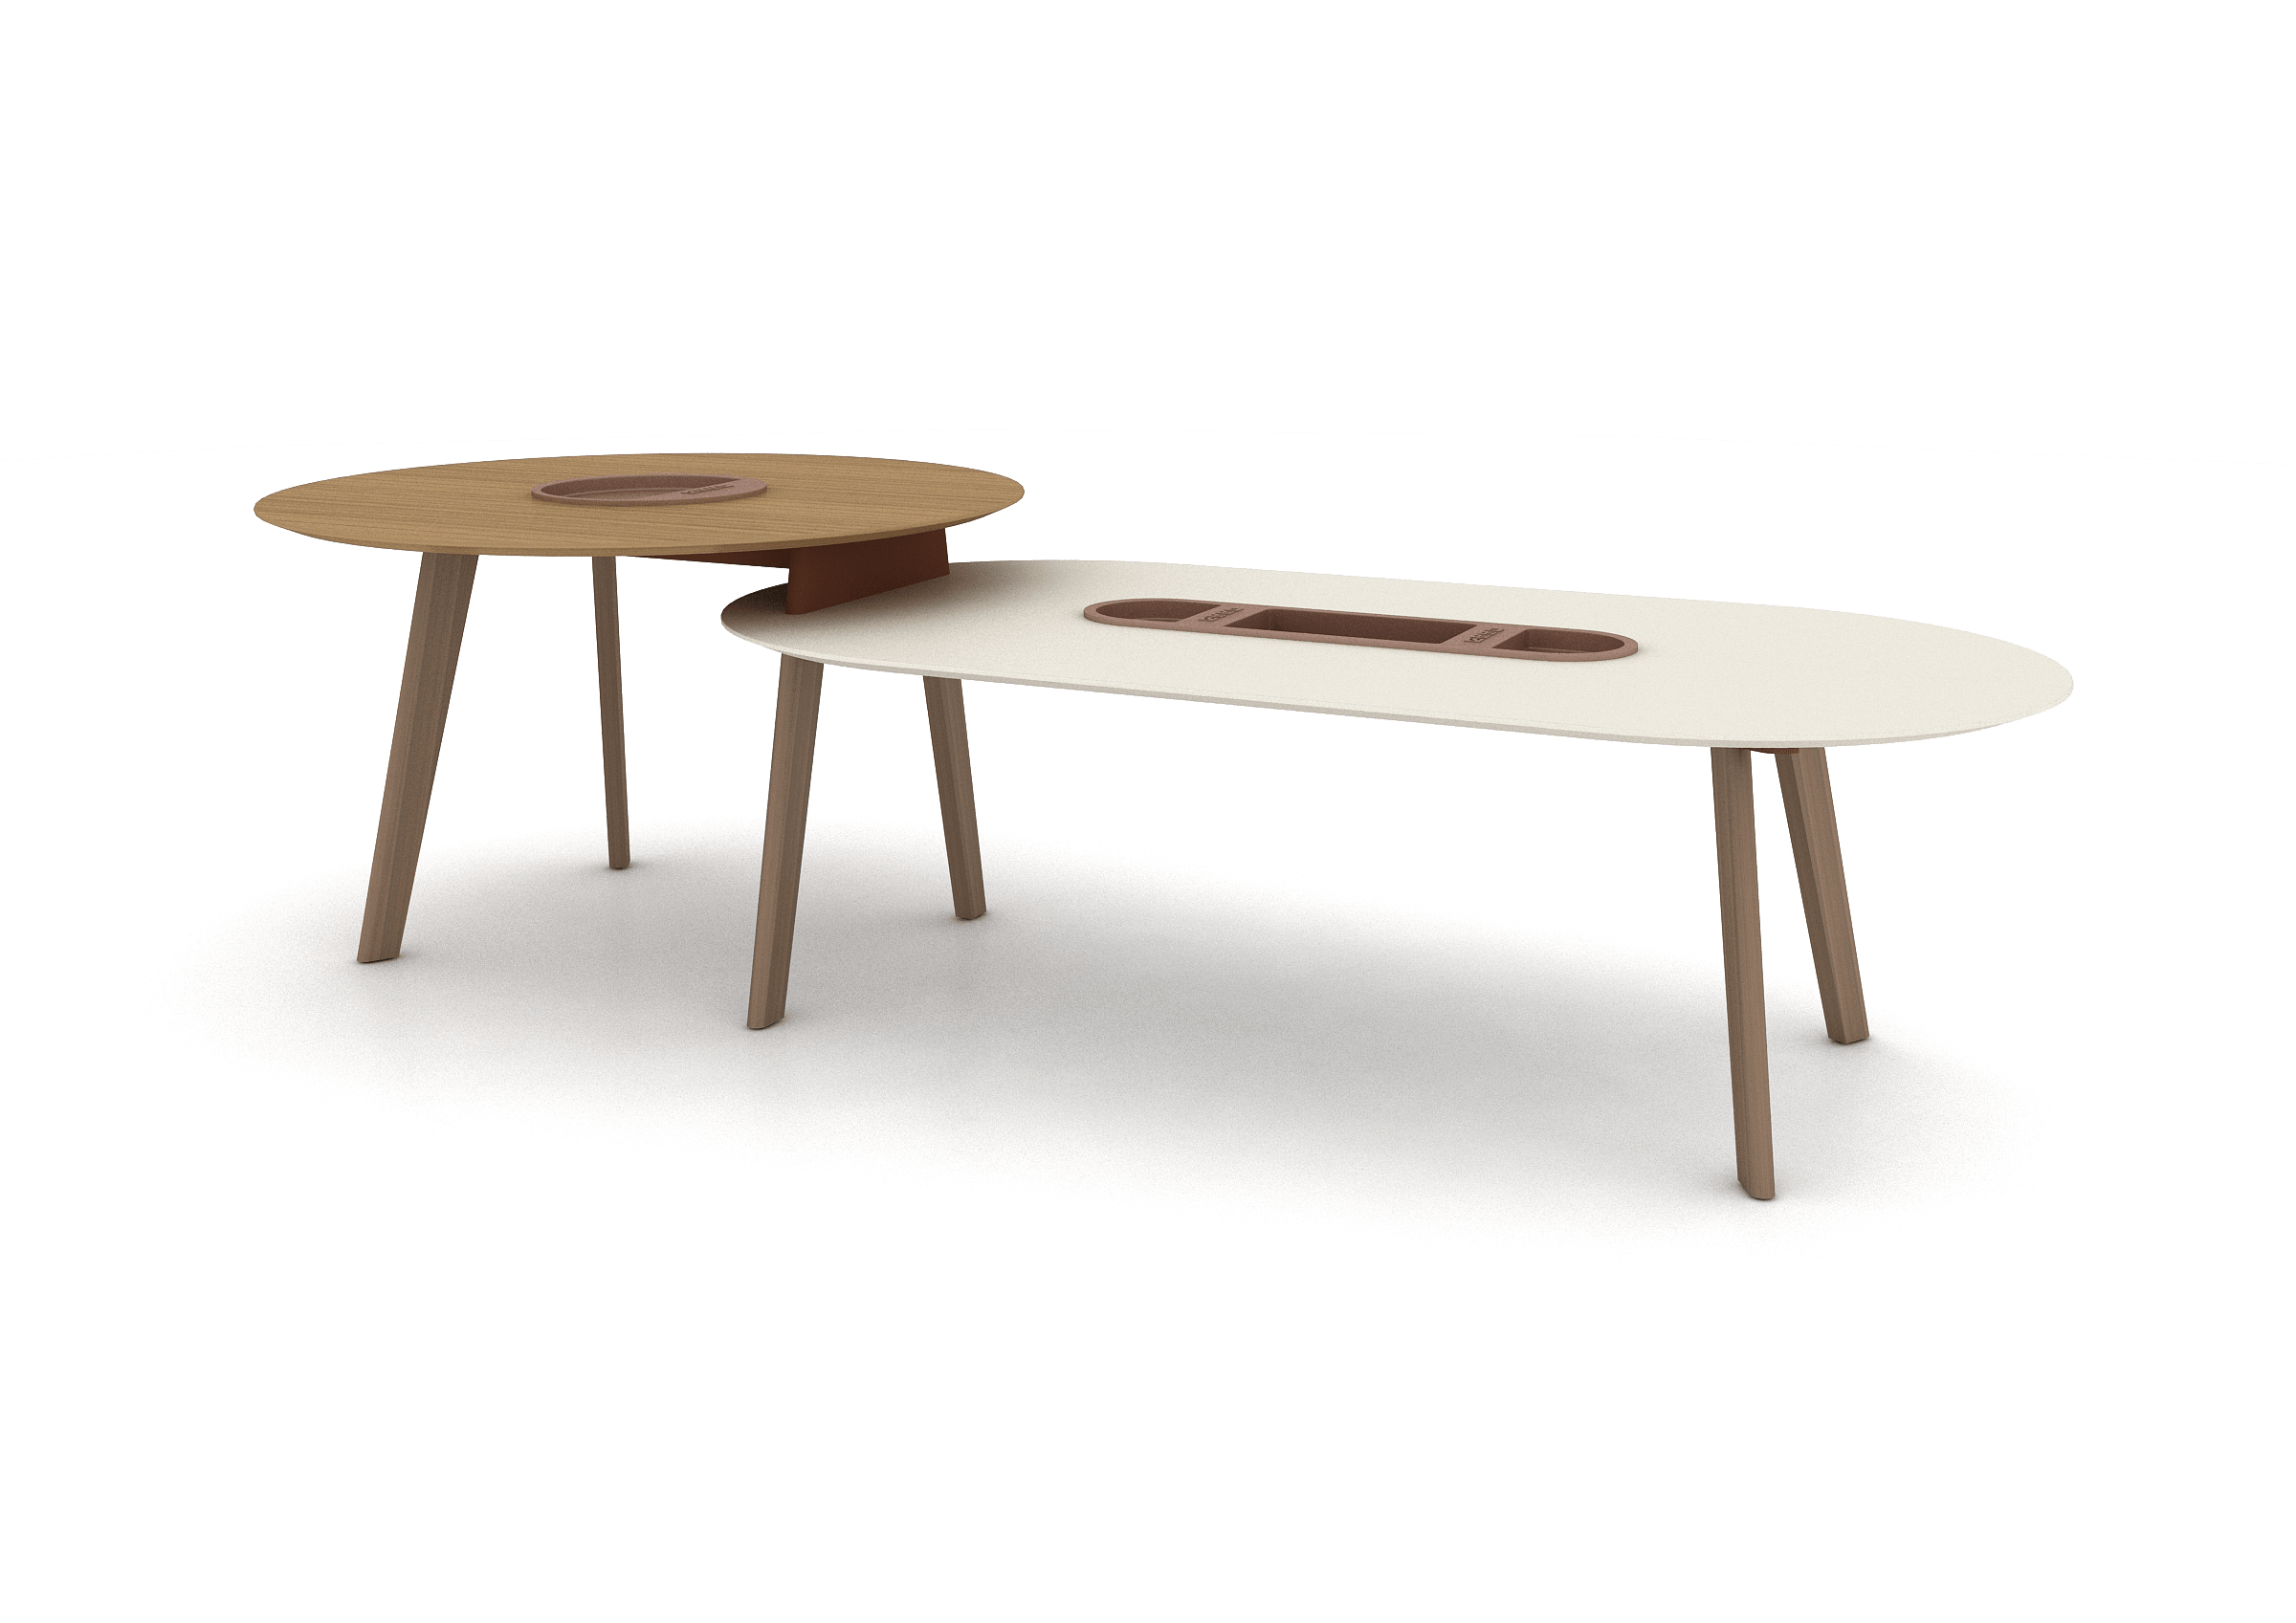 Table: Haworth Immerse